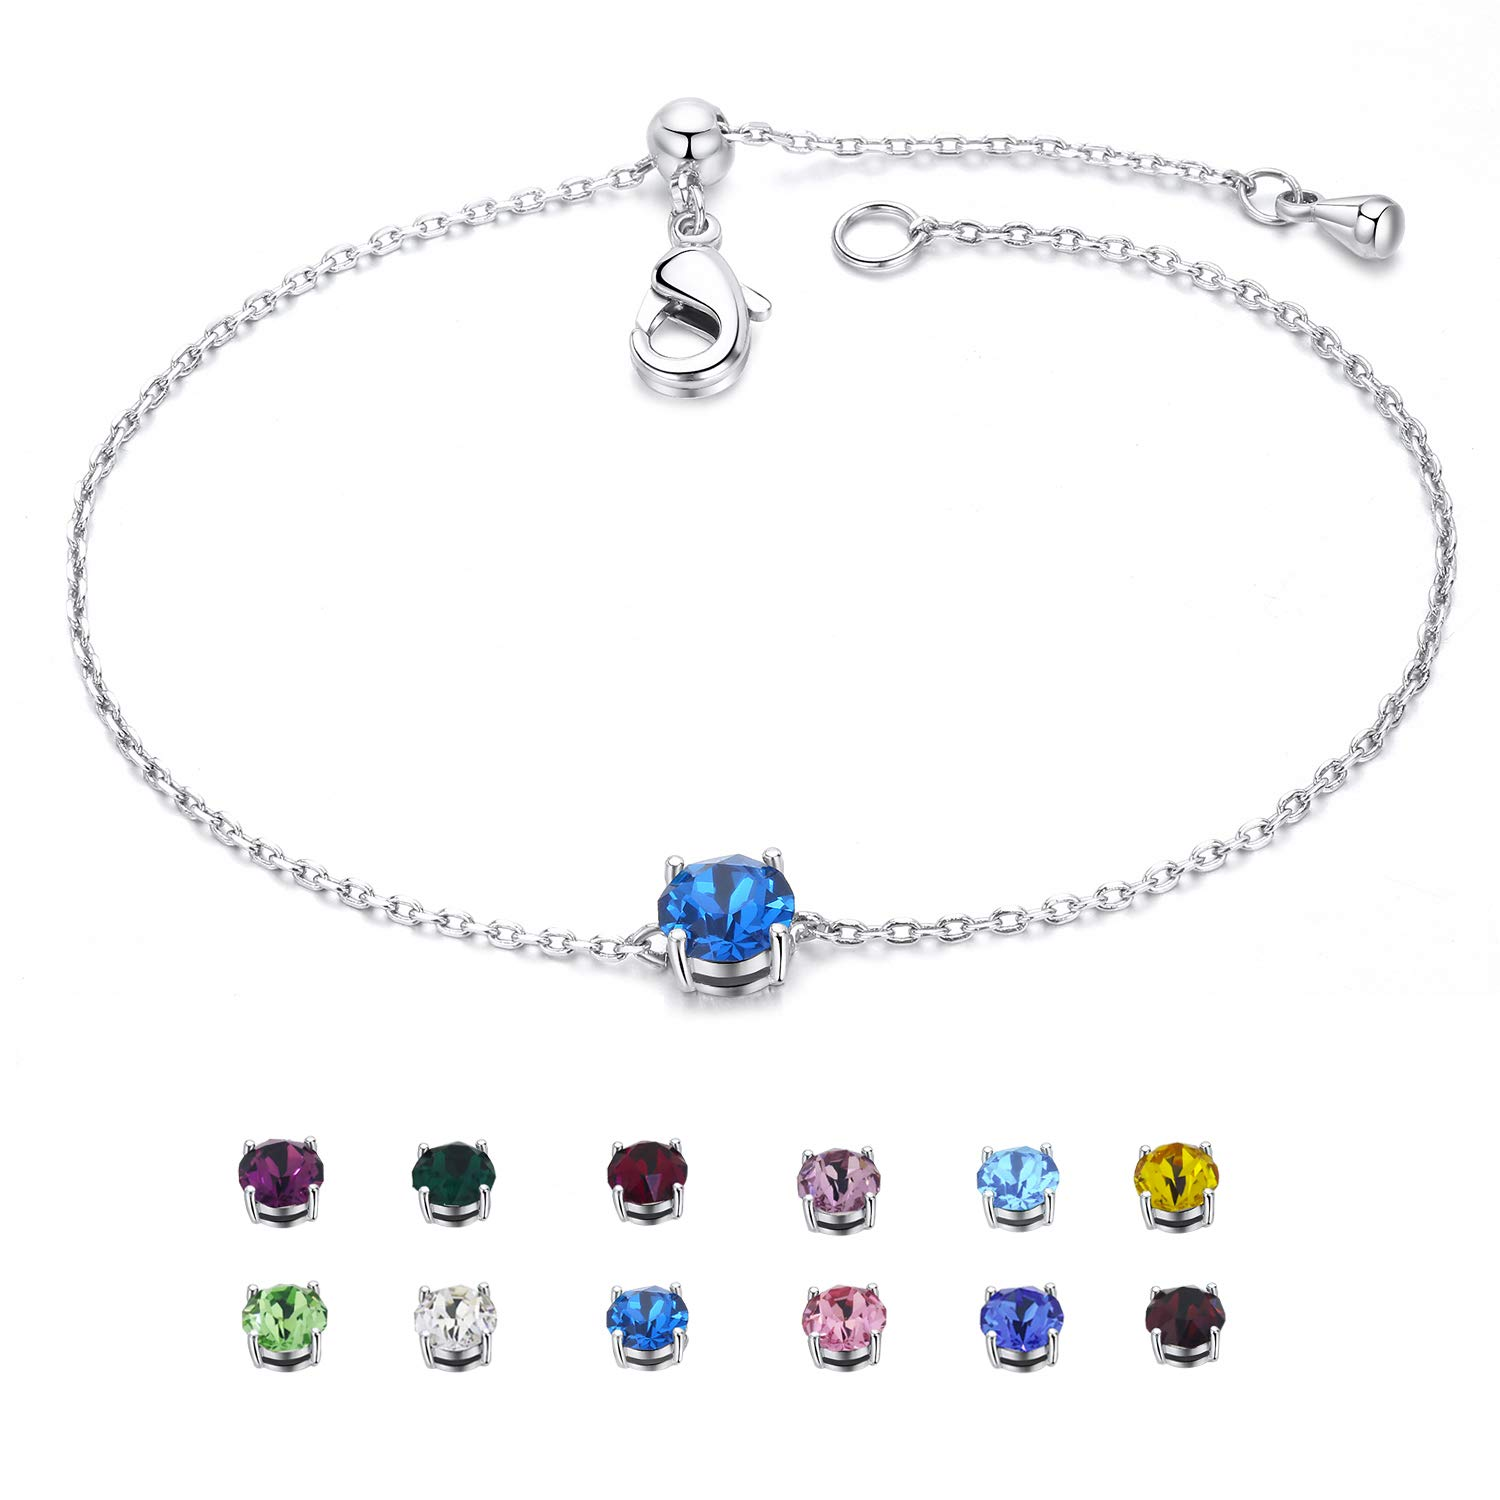 EGOO/&YAMEE Birthstone Bracelet White Gold Plated Crystal Adjustable Bangle 12 Color Gifts for Women